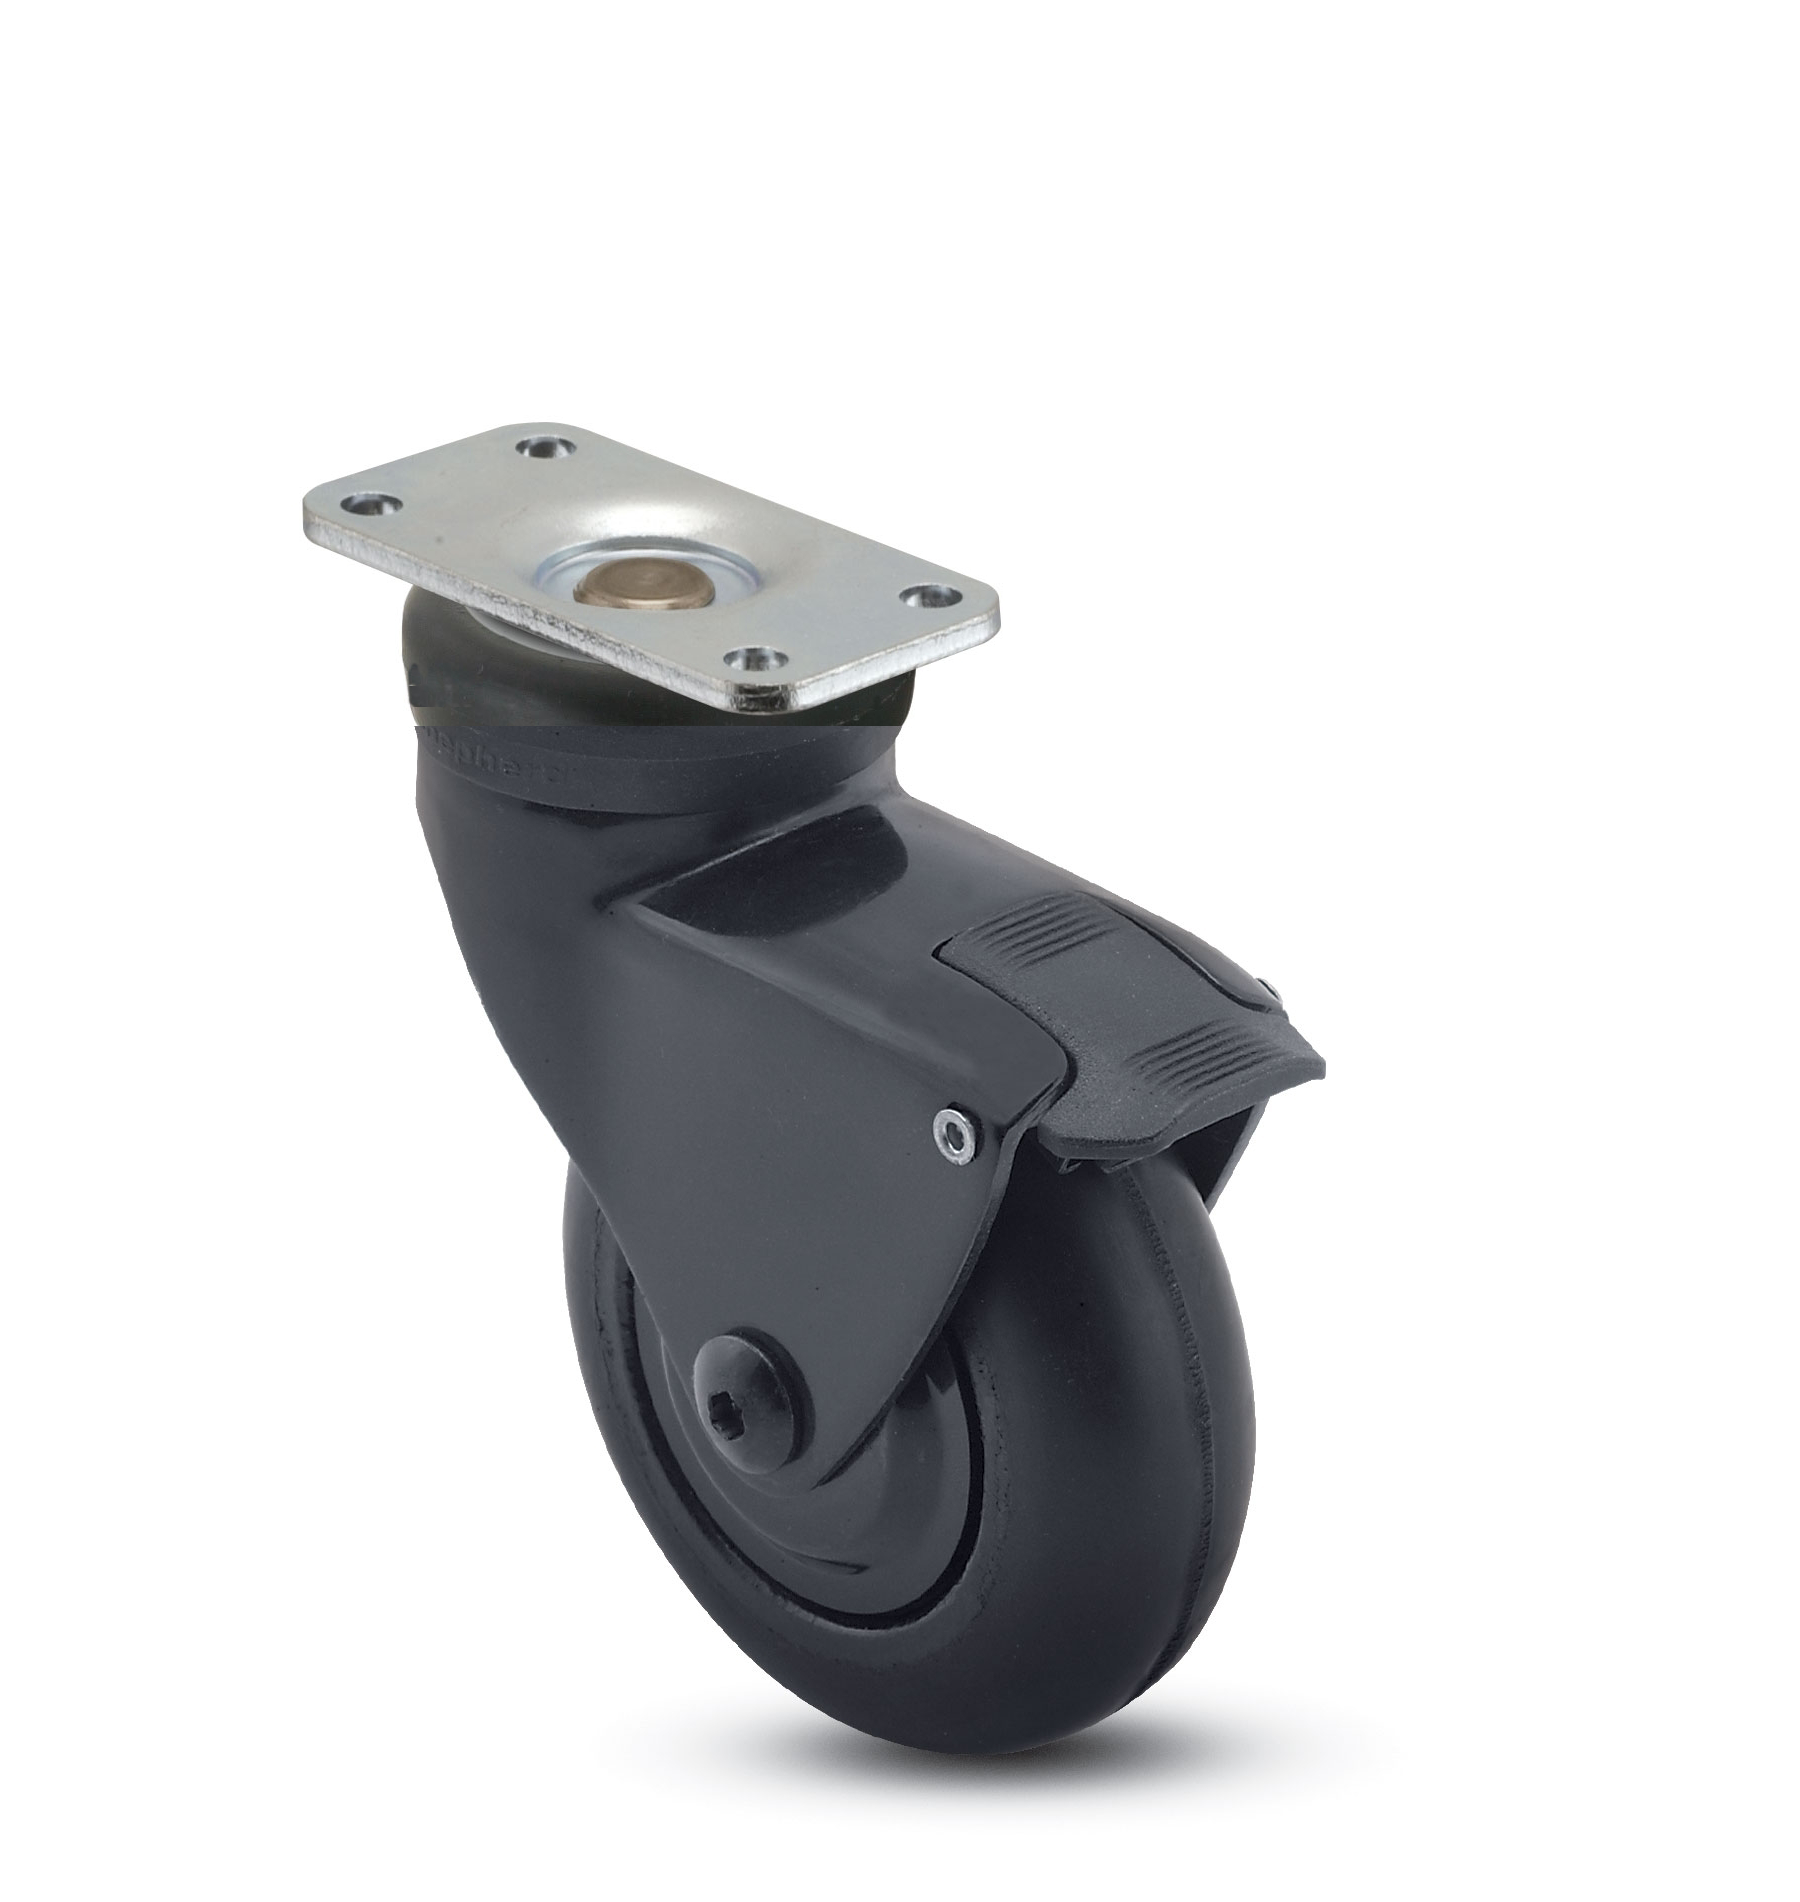 Swivel caster with a soft, non-marking wheel, black finish, top plate connector and brake.